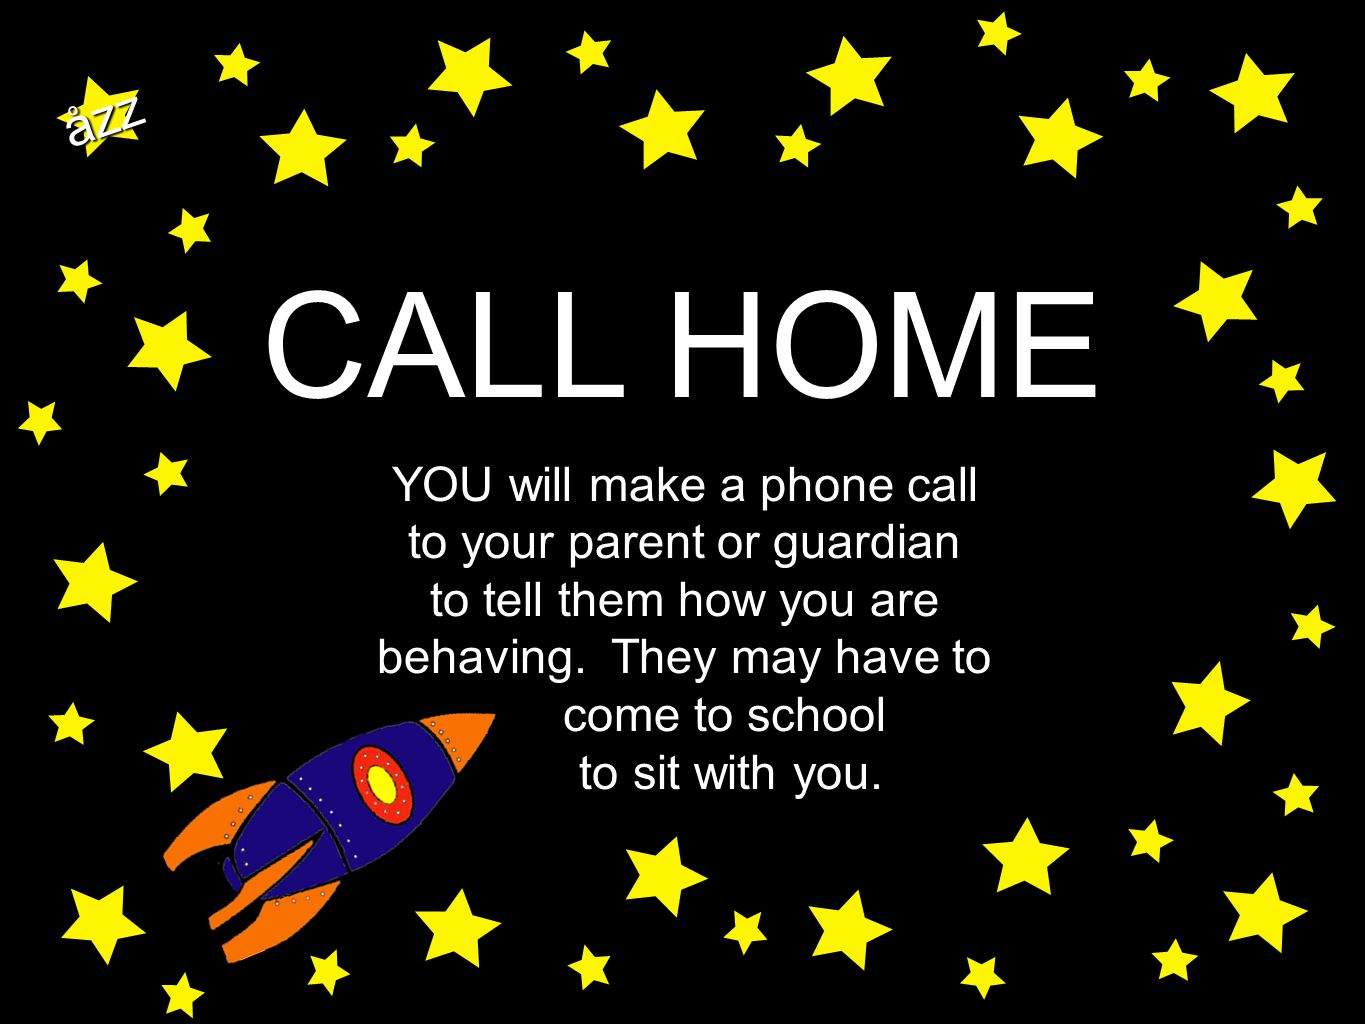 åzz CALL HOME YOU will make a phone call to your parent or guardian to tell them how you are behaving. They may have to come to school to sit with you